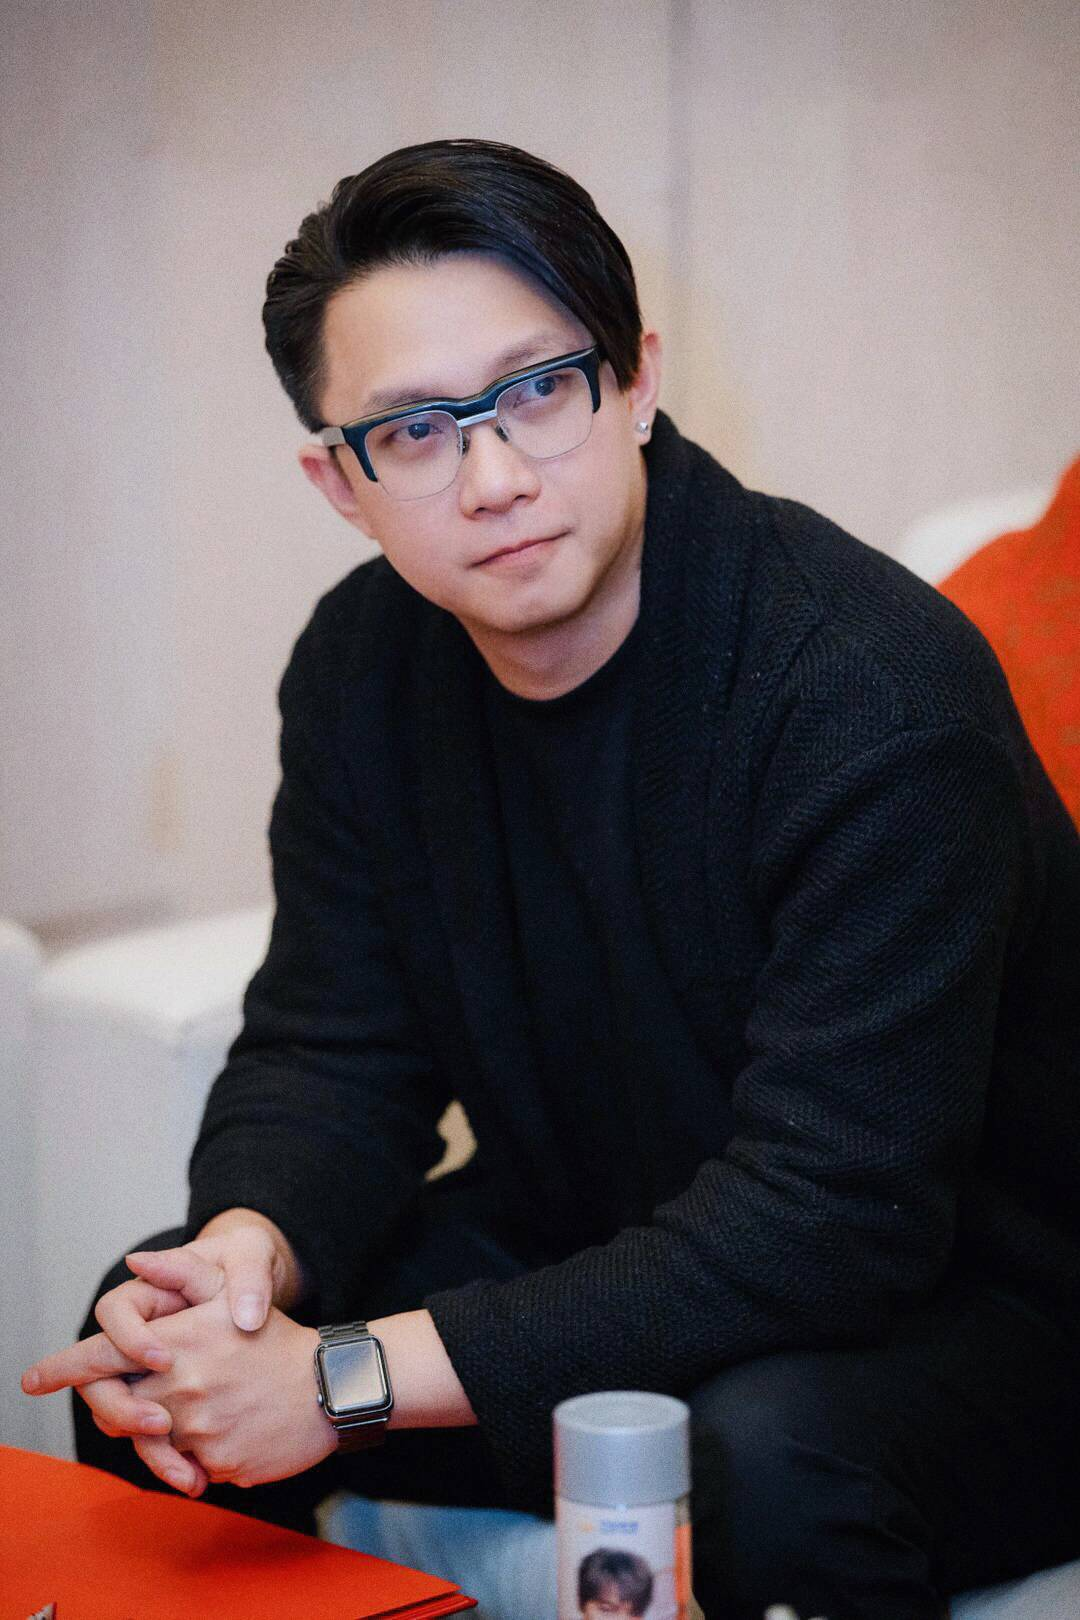 Penang-born filmmaker Sam Quah Boon Lip's mainland Chinese thriller film Sheep Without A Shepherd became the highest-grossing film at the mainland Chinese box office during its opening weekend (Dec 13-15,2019). Photo: Handout